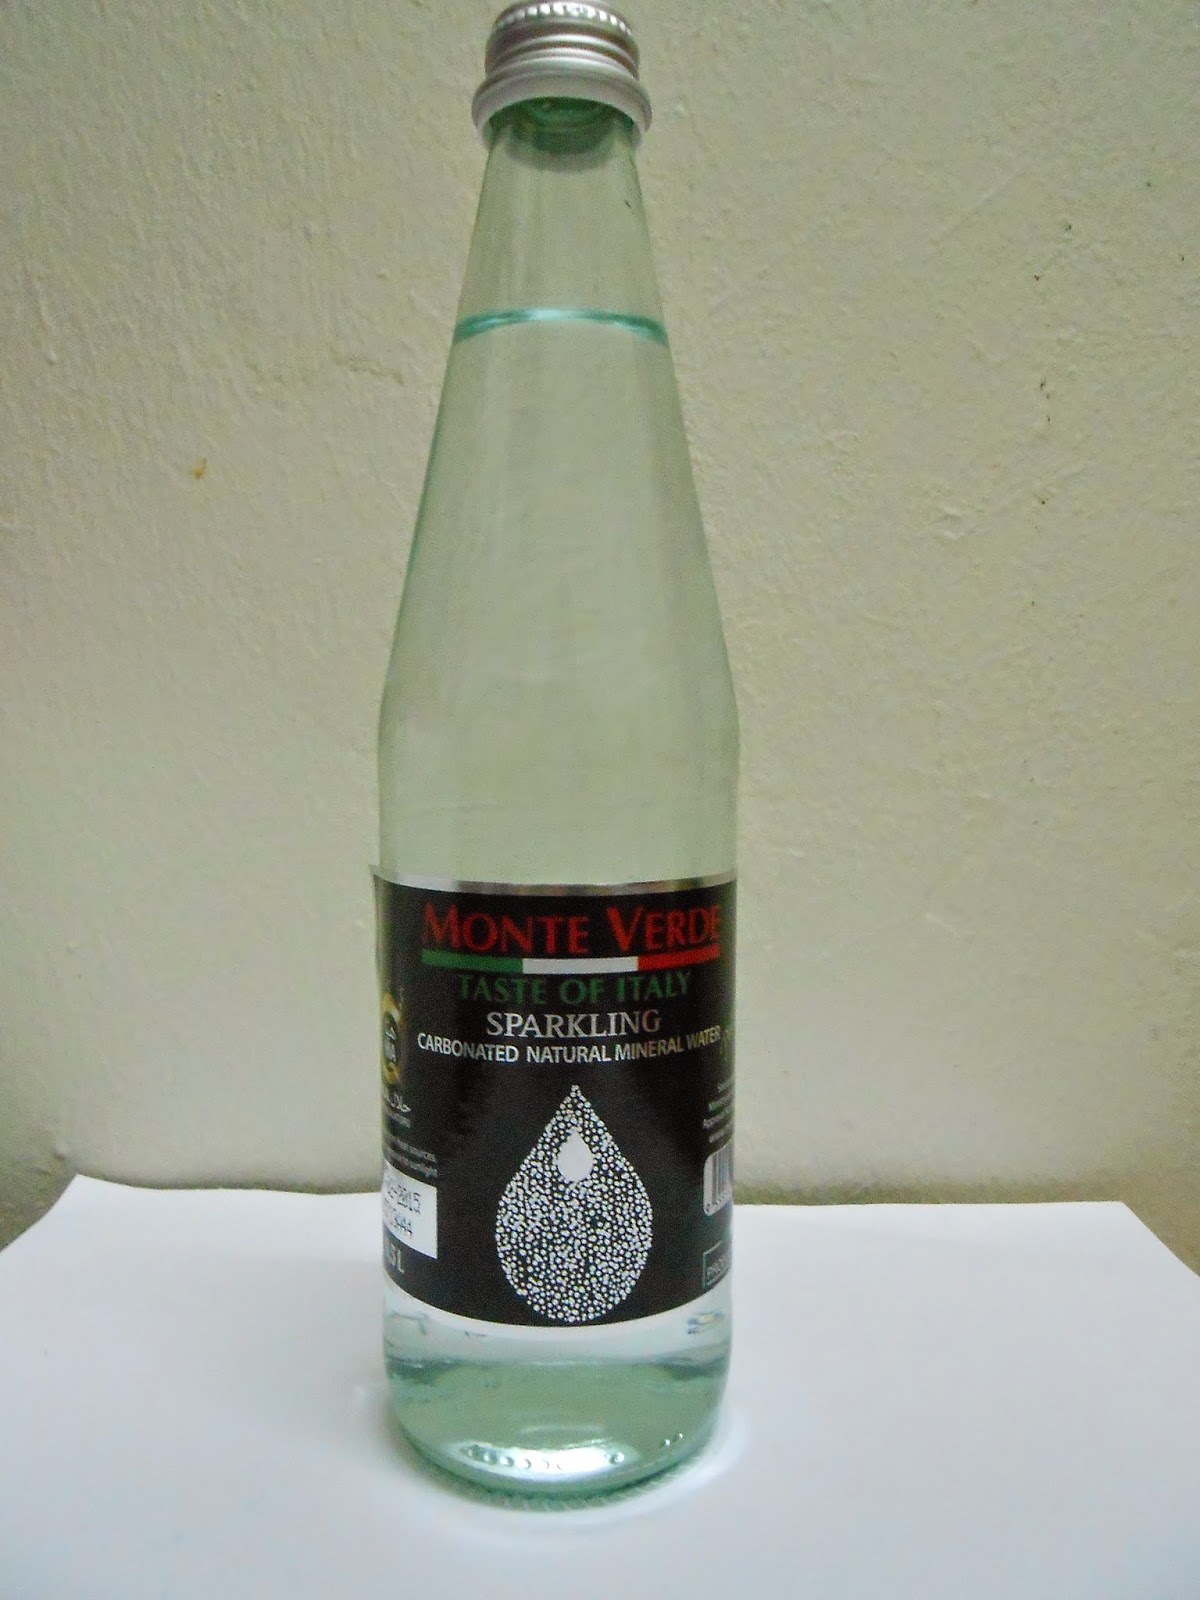 MONTE VERDE SPARKLING CARBONATED MINERAL WATER